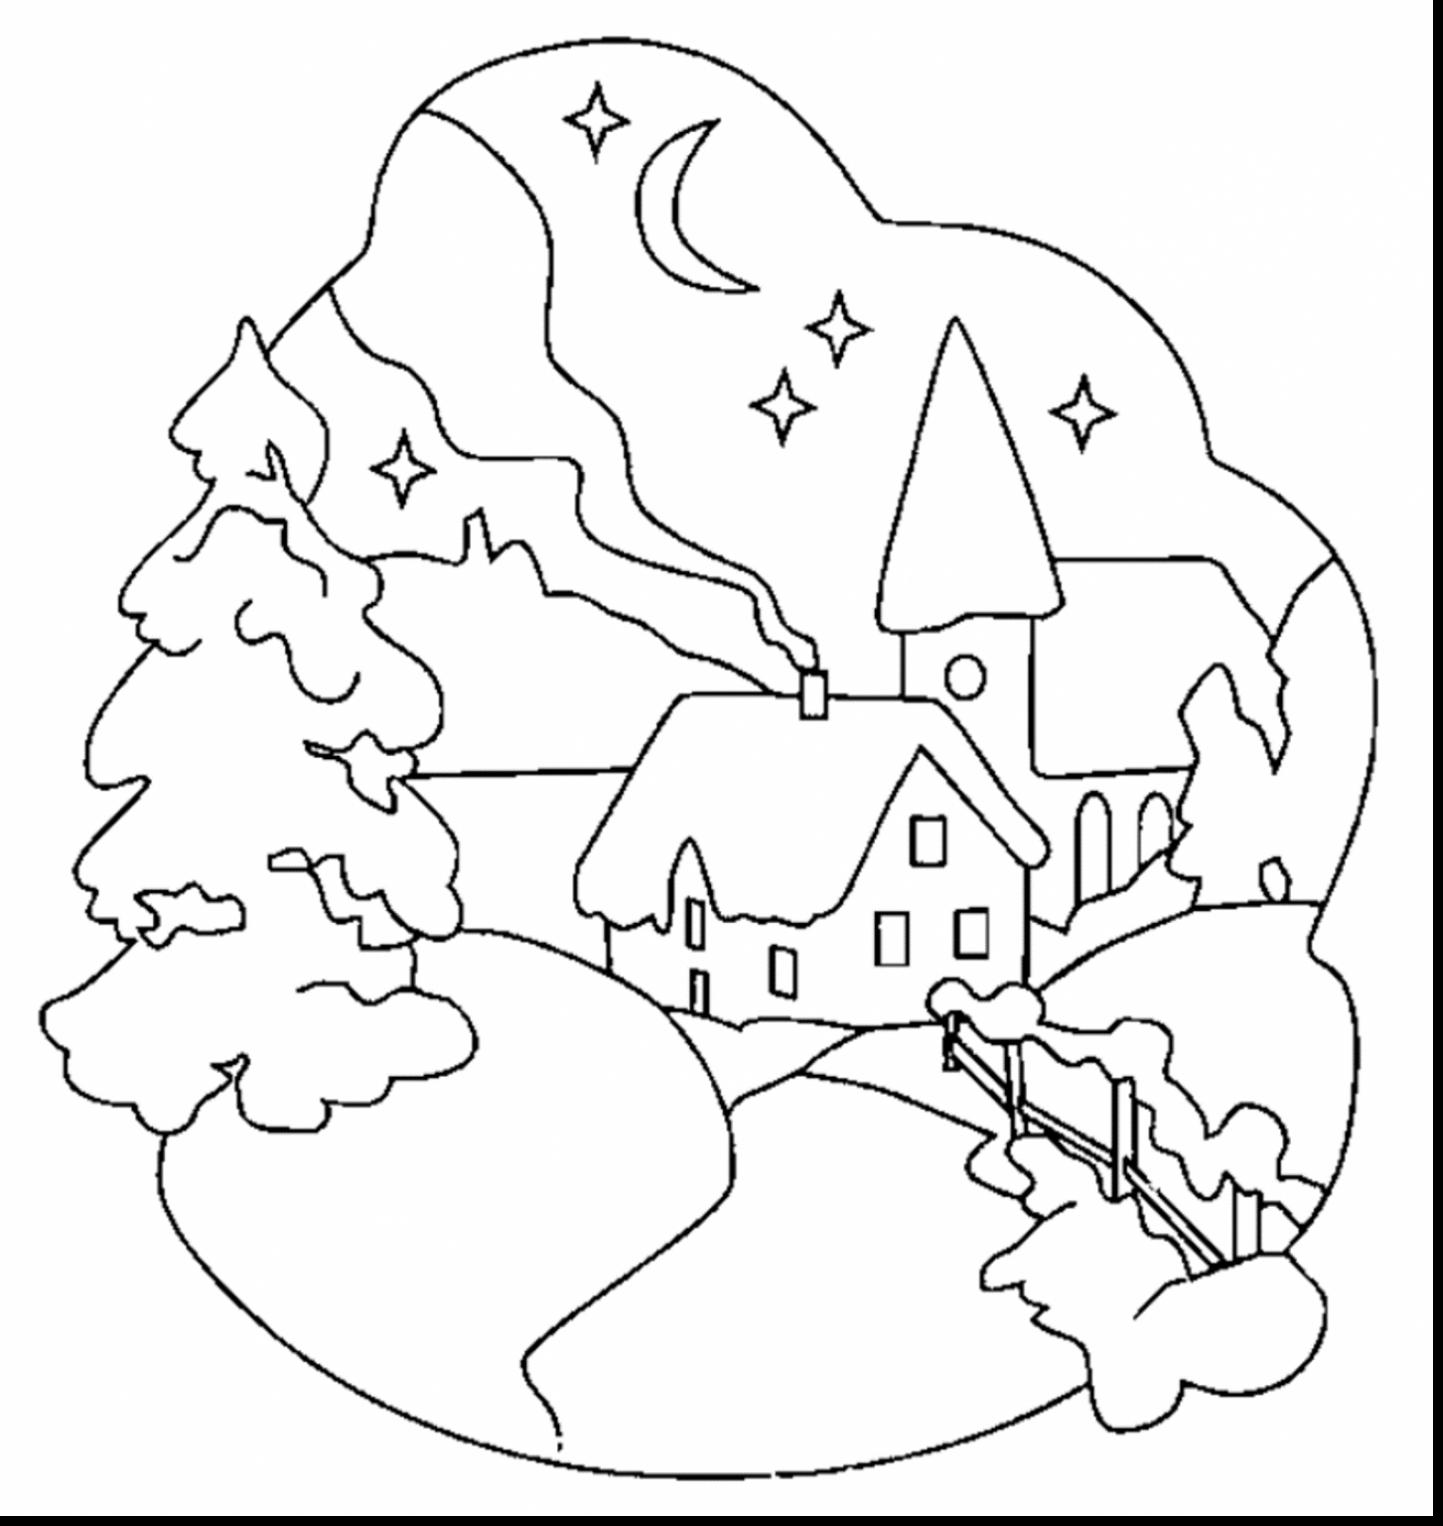 1443x1526 New Coloring Pages For Winter Wonderland Leri Co Scene Idea